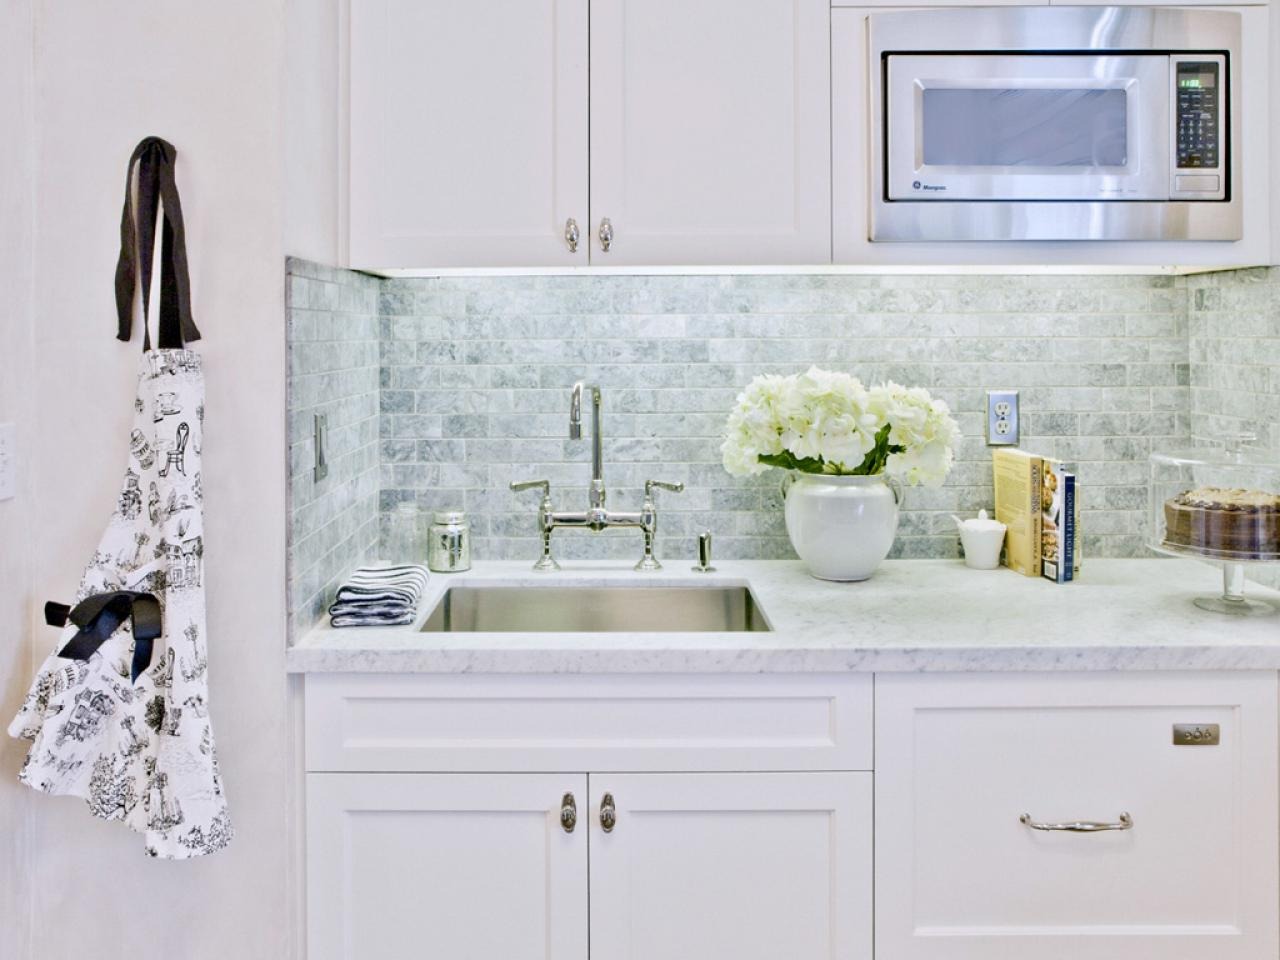 Blue tile backsplash kitchen - Subway Tile Backsplashes Subway Tile Backsplash Patterns